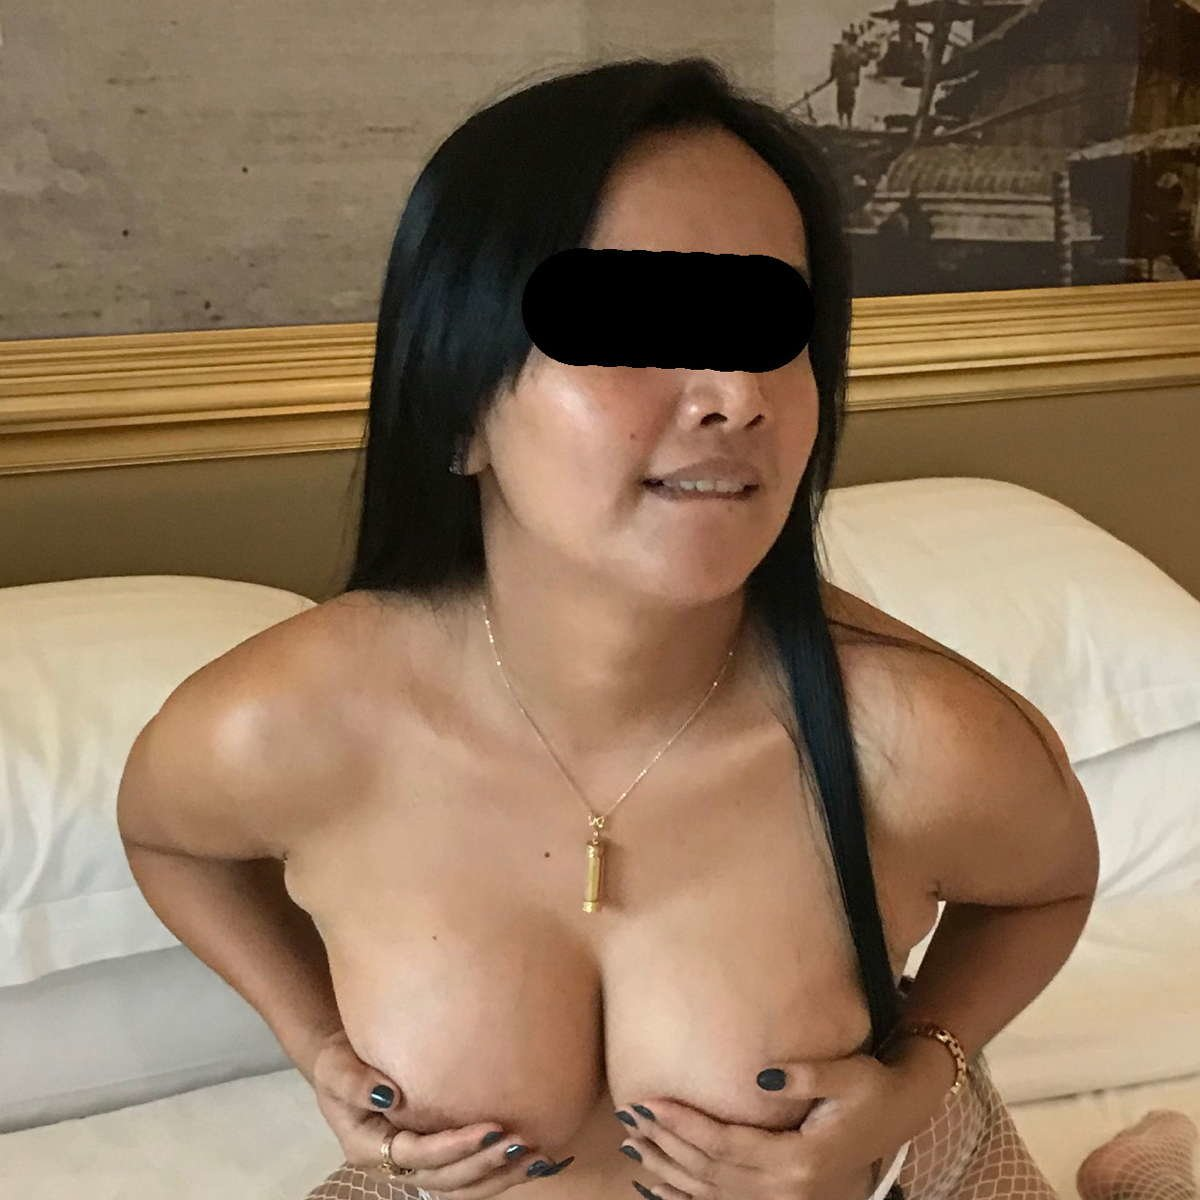 female escorts thai escort a level